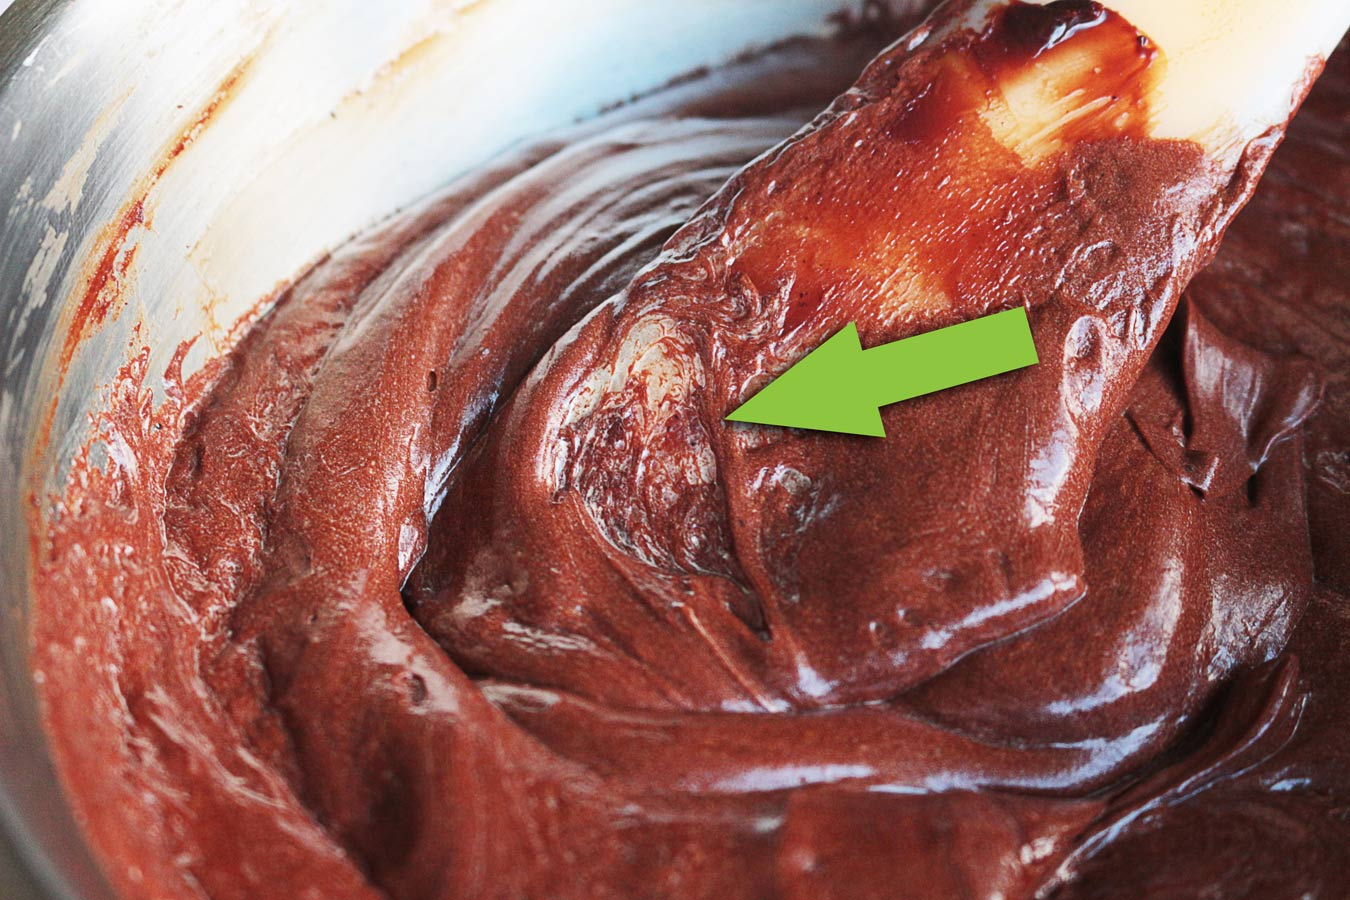 Learn to fix your broken ganache and never throw out that expensive chocolate ever again! Learn my simple tricks now and master your ganache!